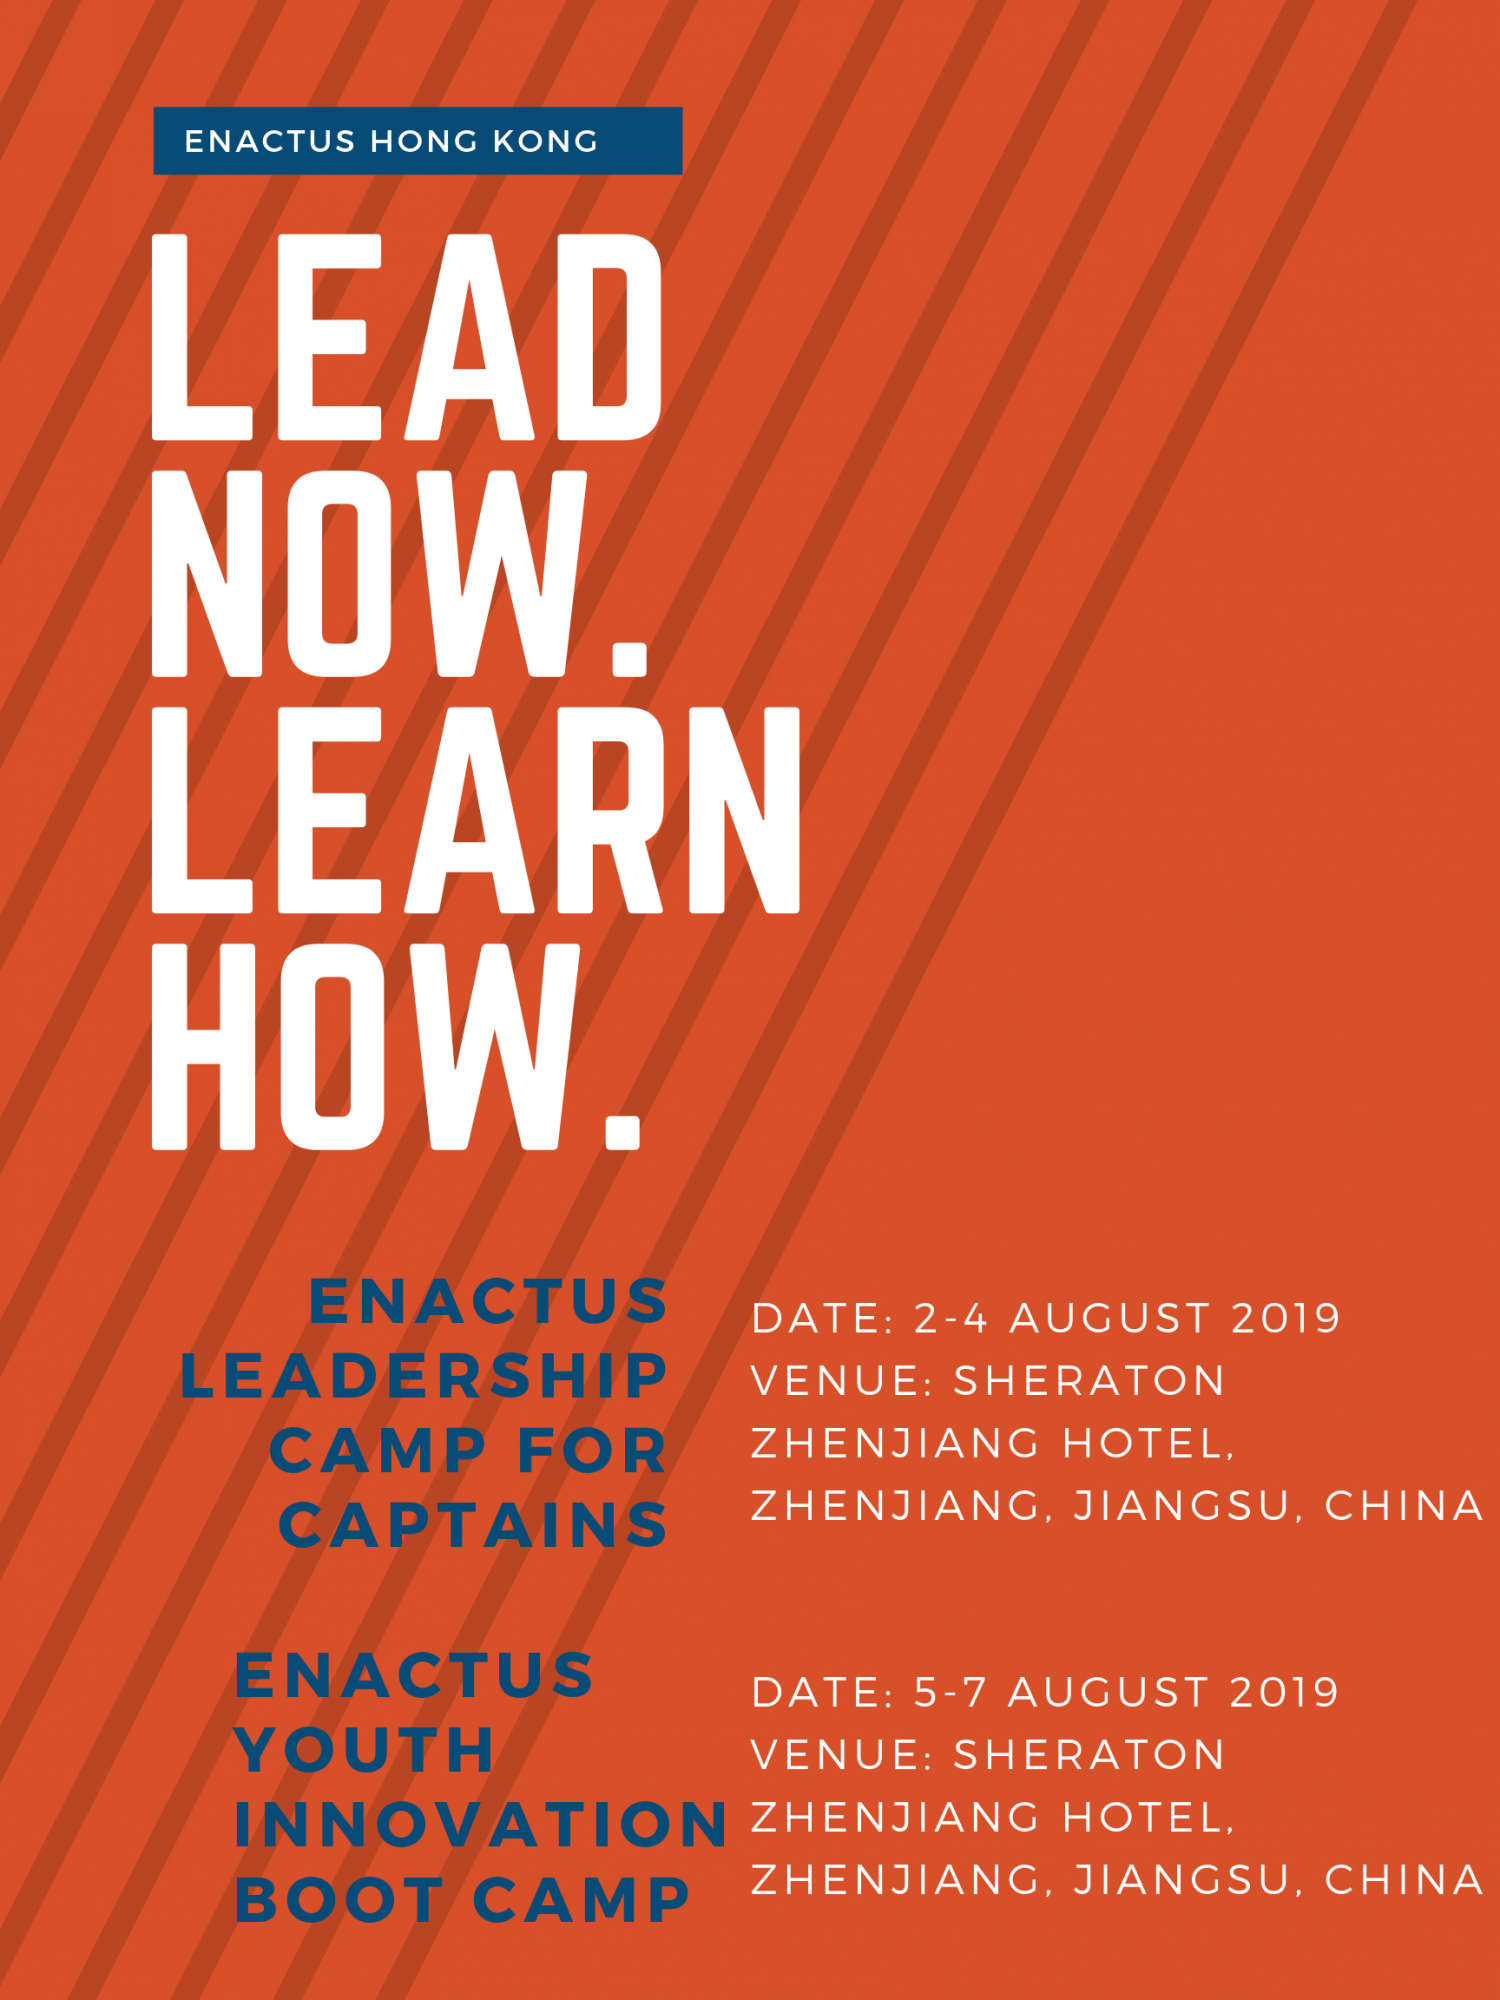 Enactus Leadership Camp for Captains & Enactus Youth Innovation Boot Camp